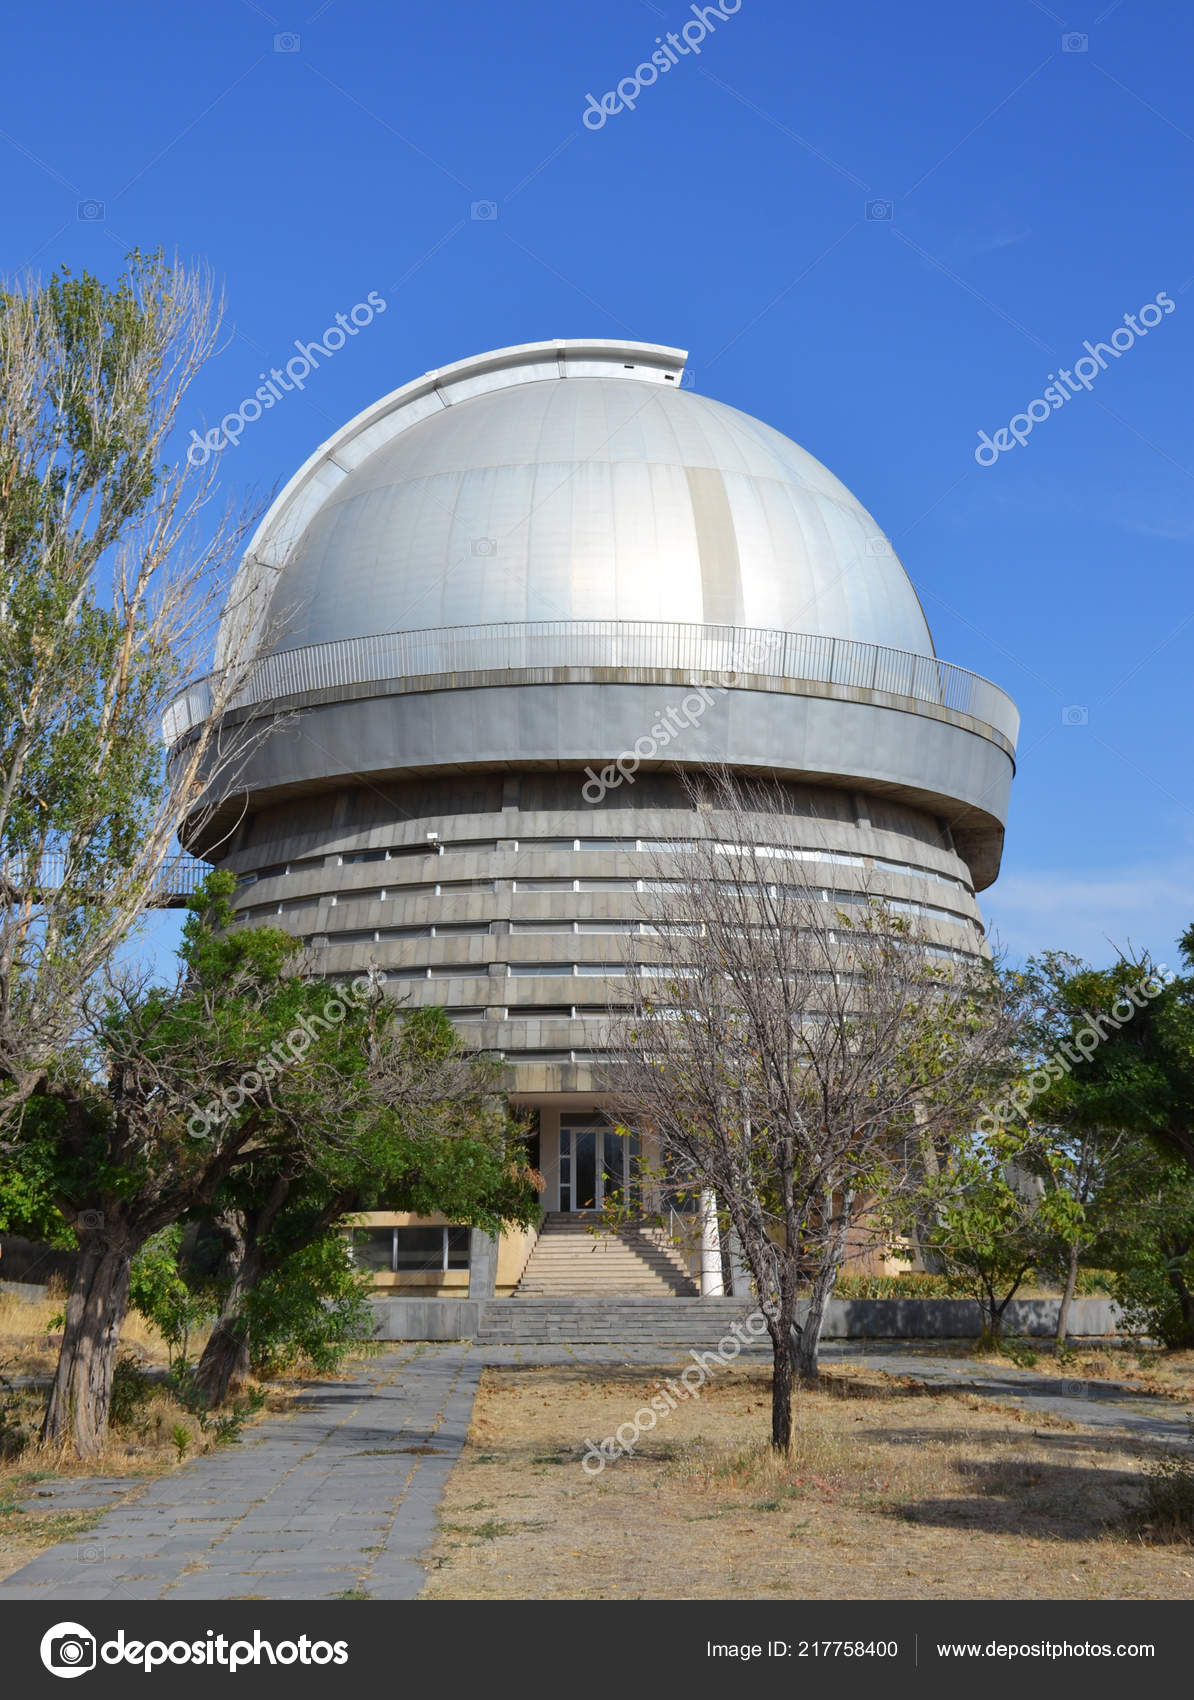 Astronomical Observatory Telescope Byurakan Armenia Stock Photo C Arevhamb 217758400